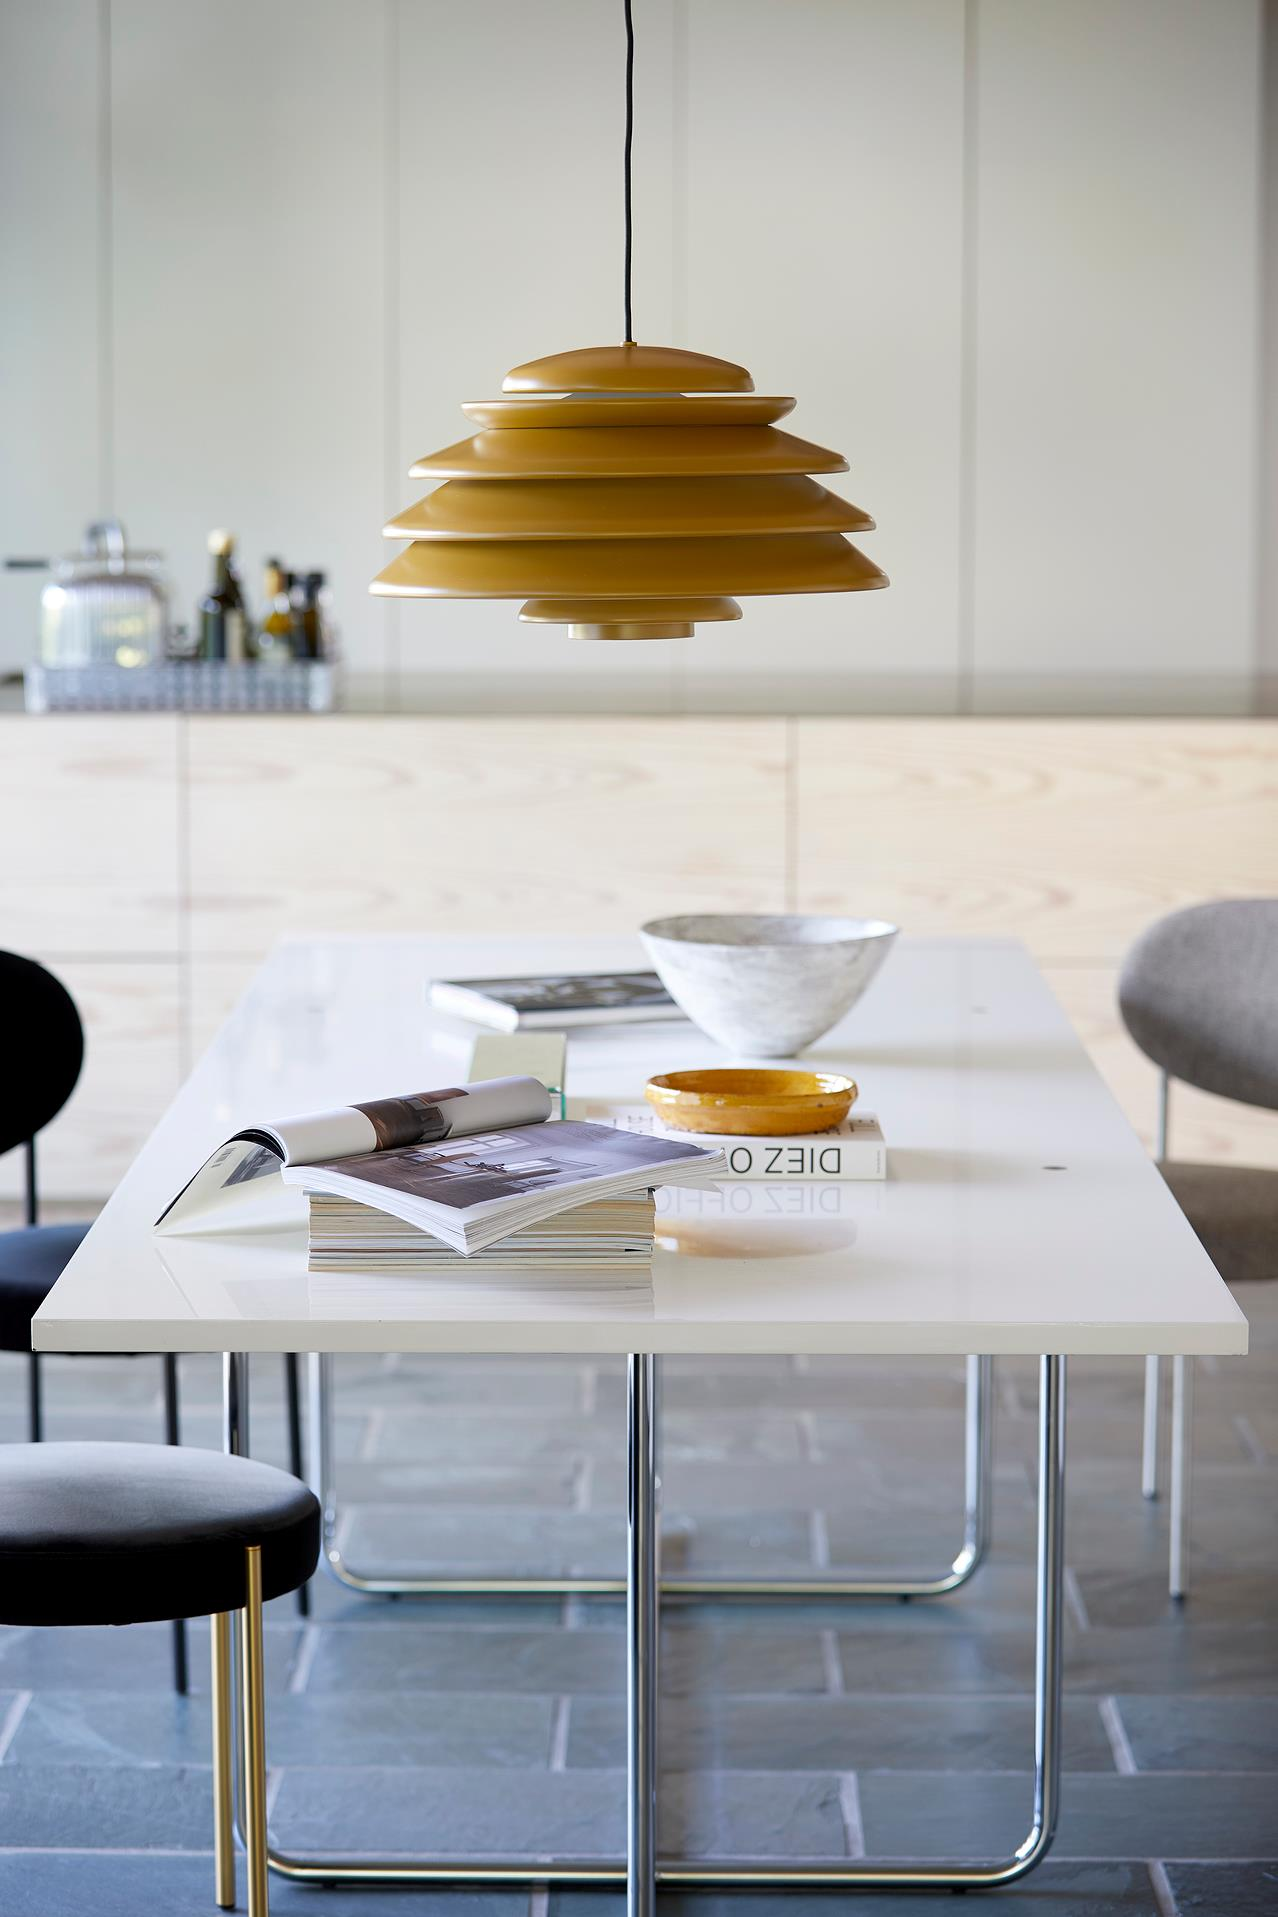 New icons from the Panton archives, Hive pendant & Reflect